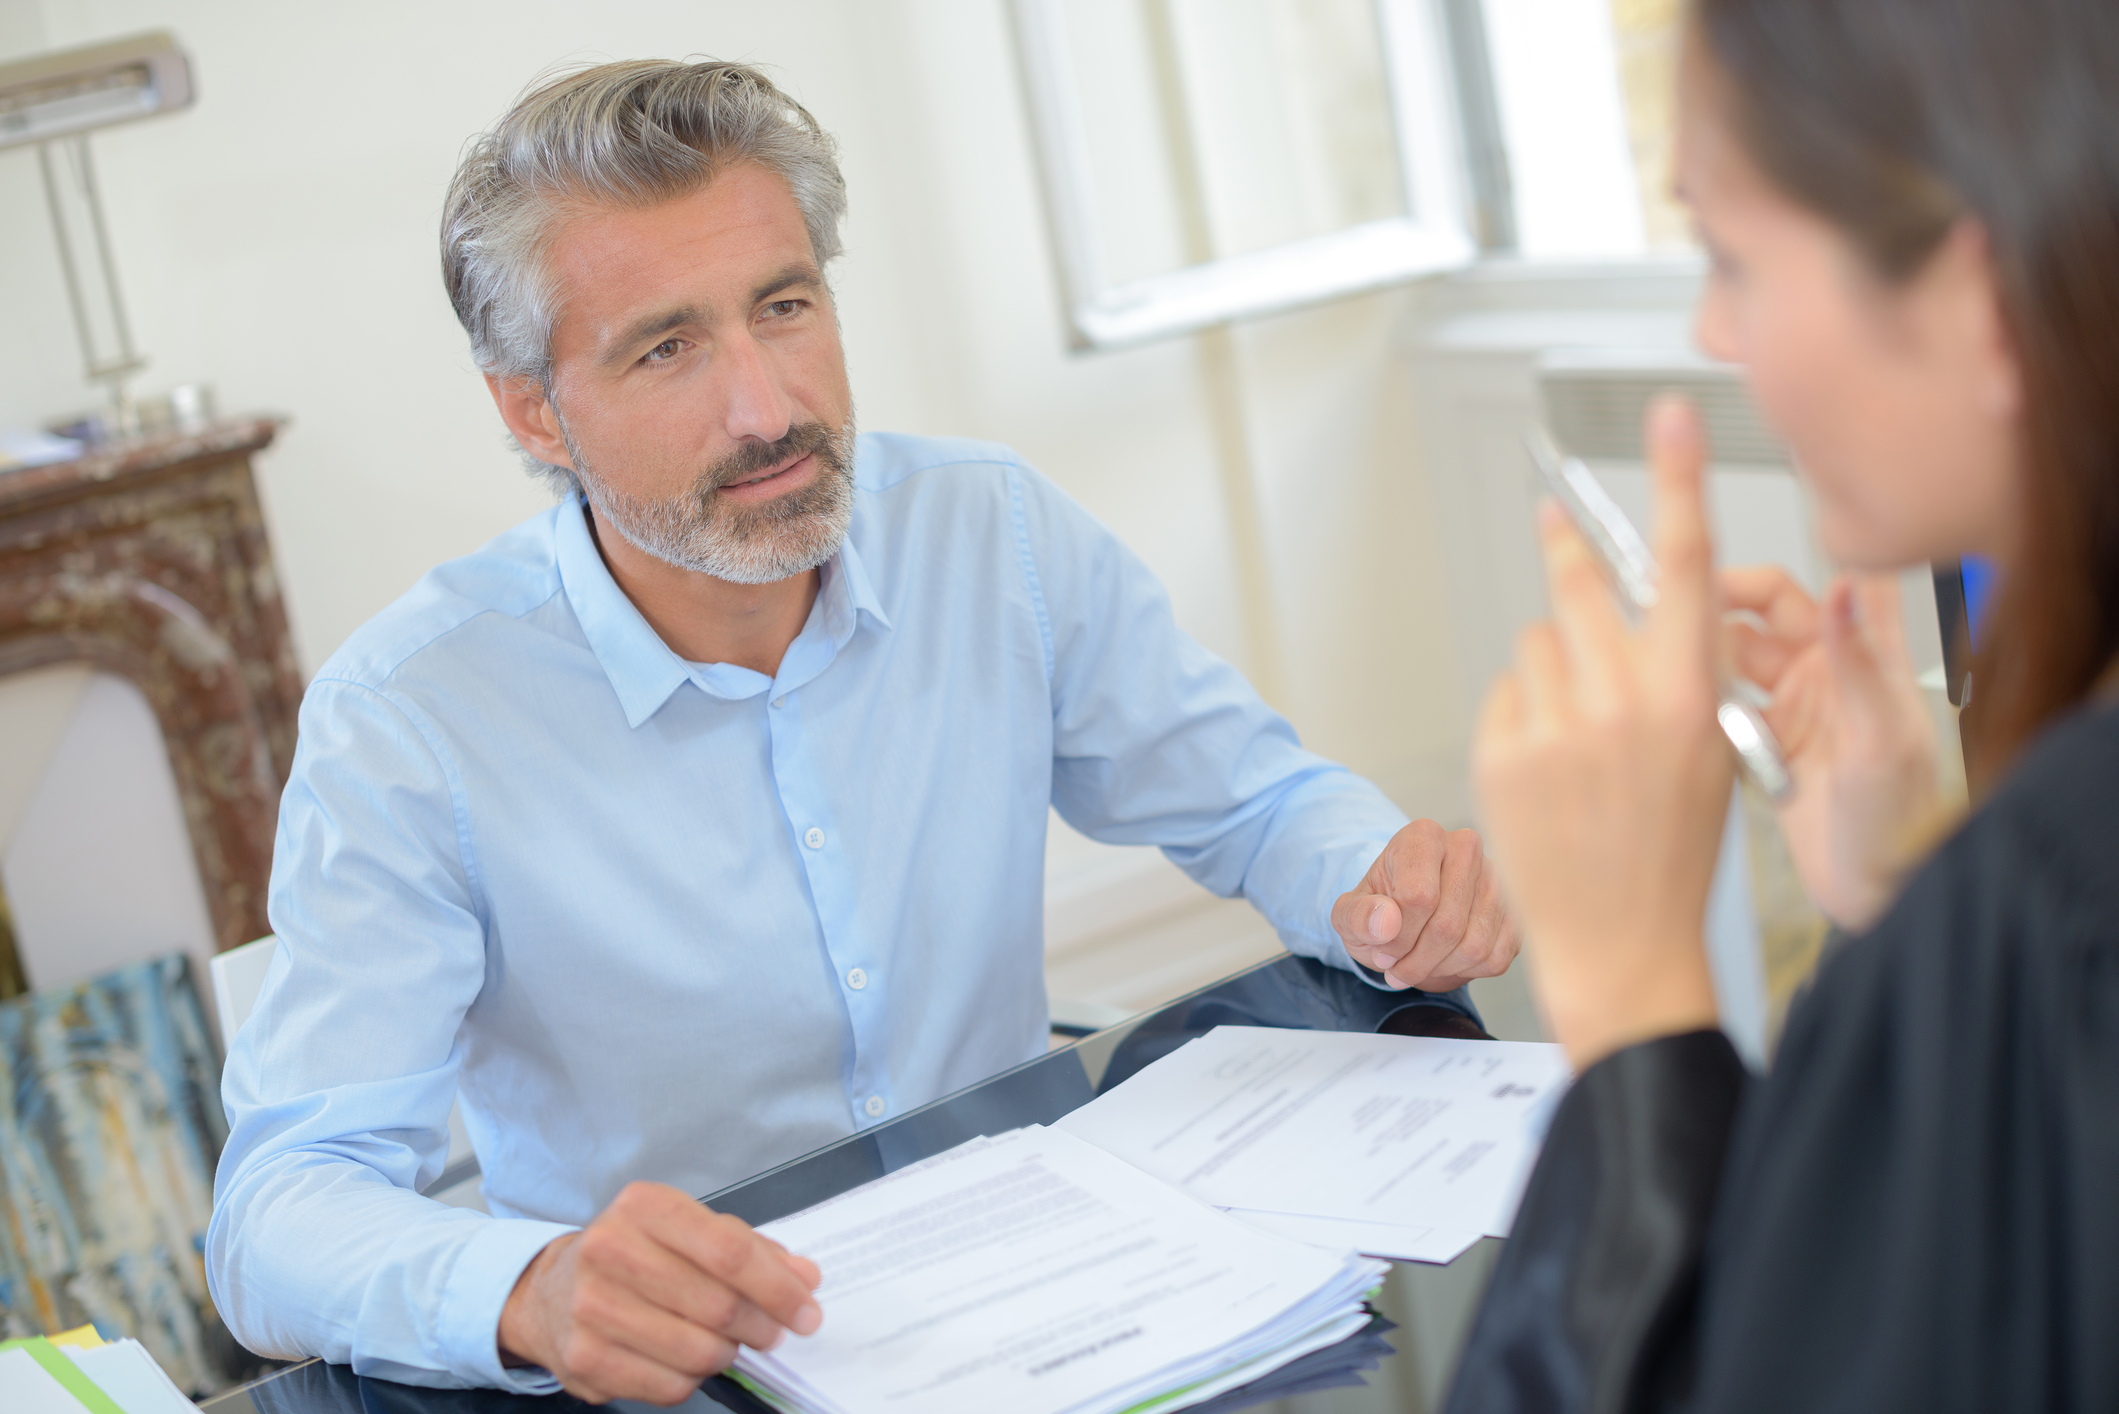 Man asking a workers' comp attorney questions